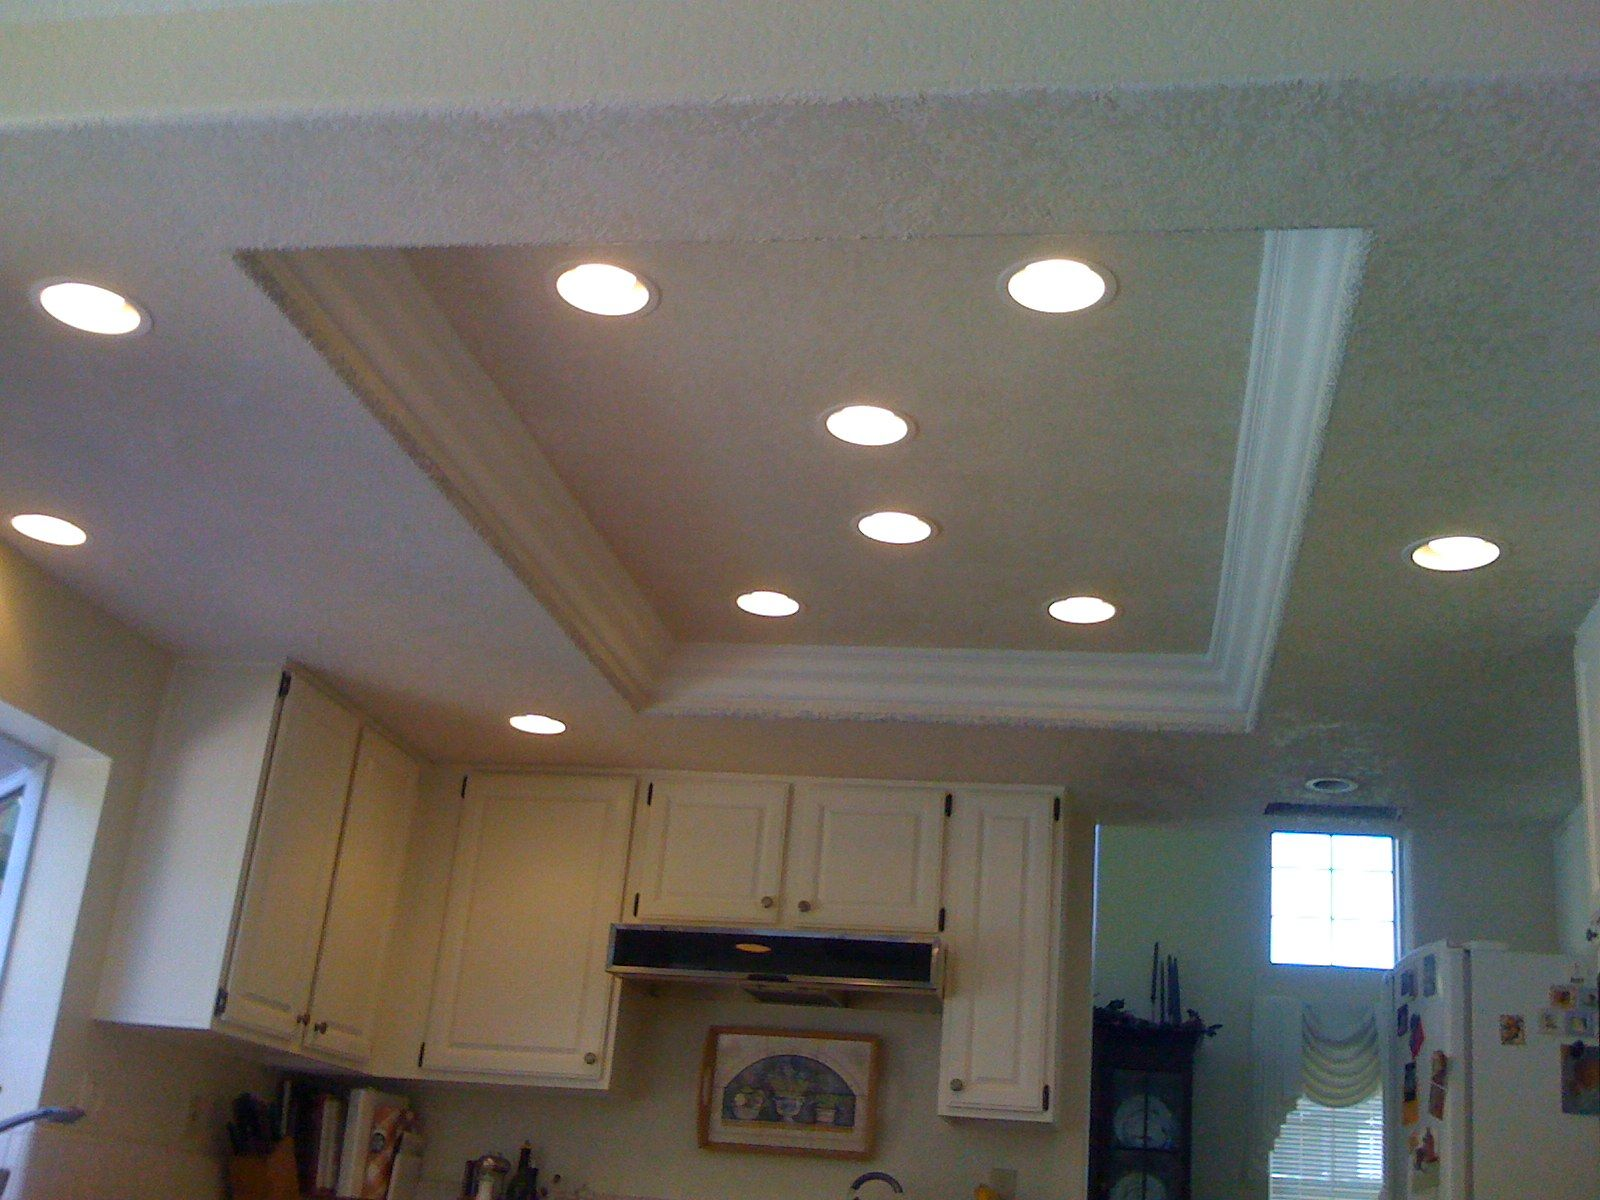 Kitchen Recessed Lighting | lights replace them with recessed lights ... for Ceiling Light Box Design  177nar